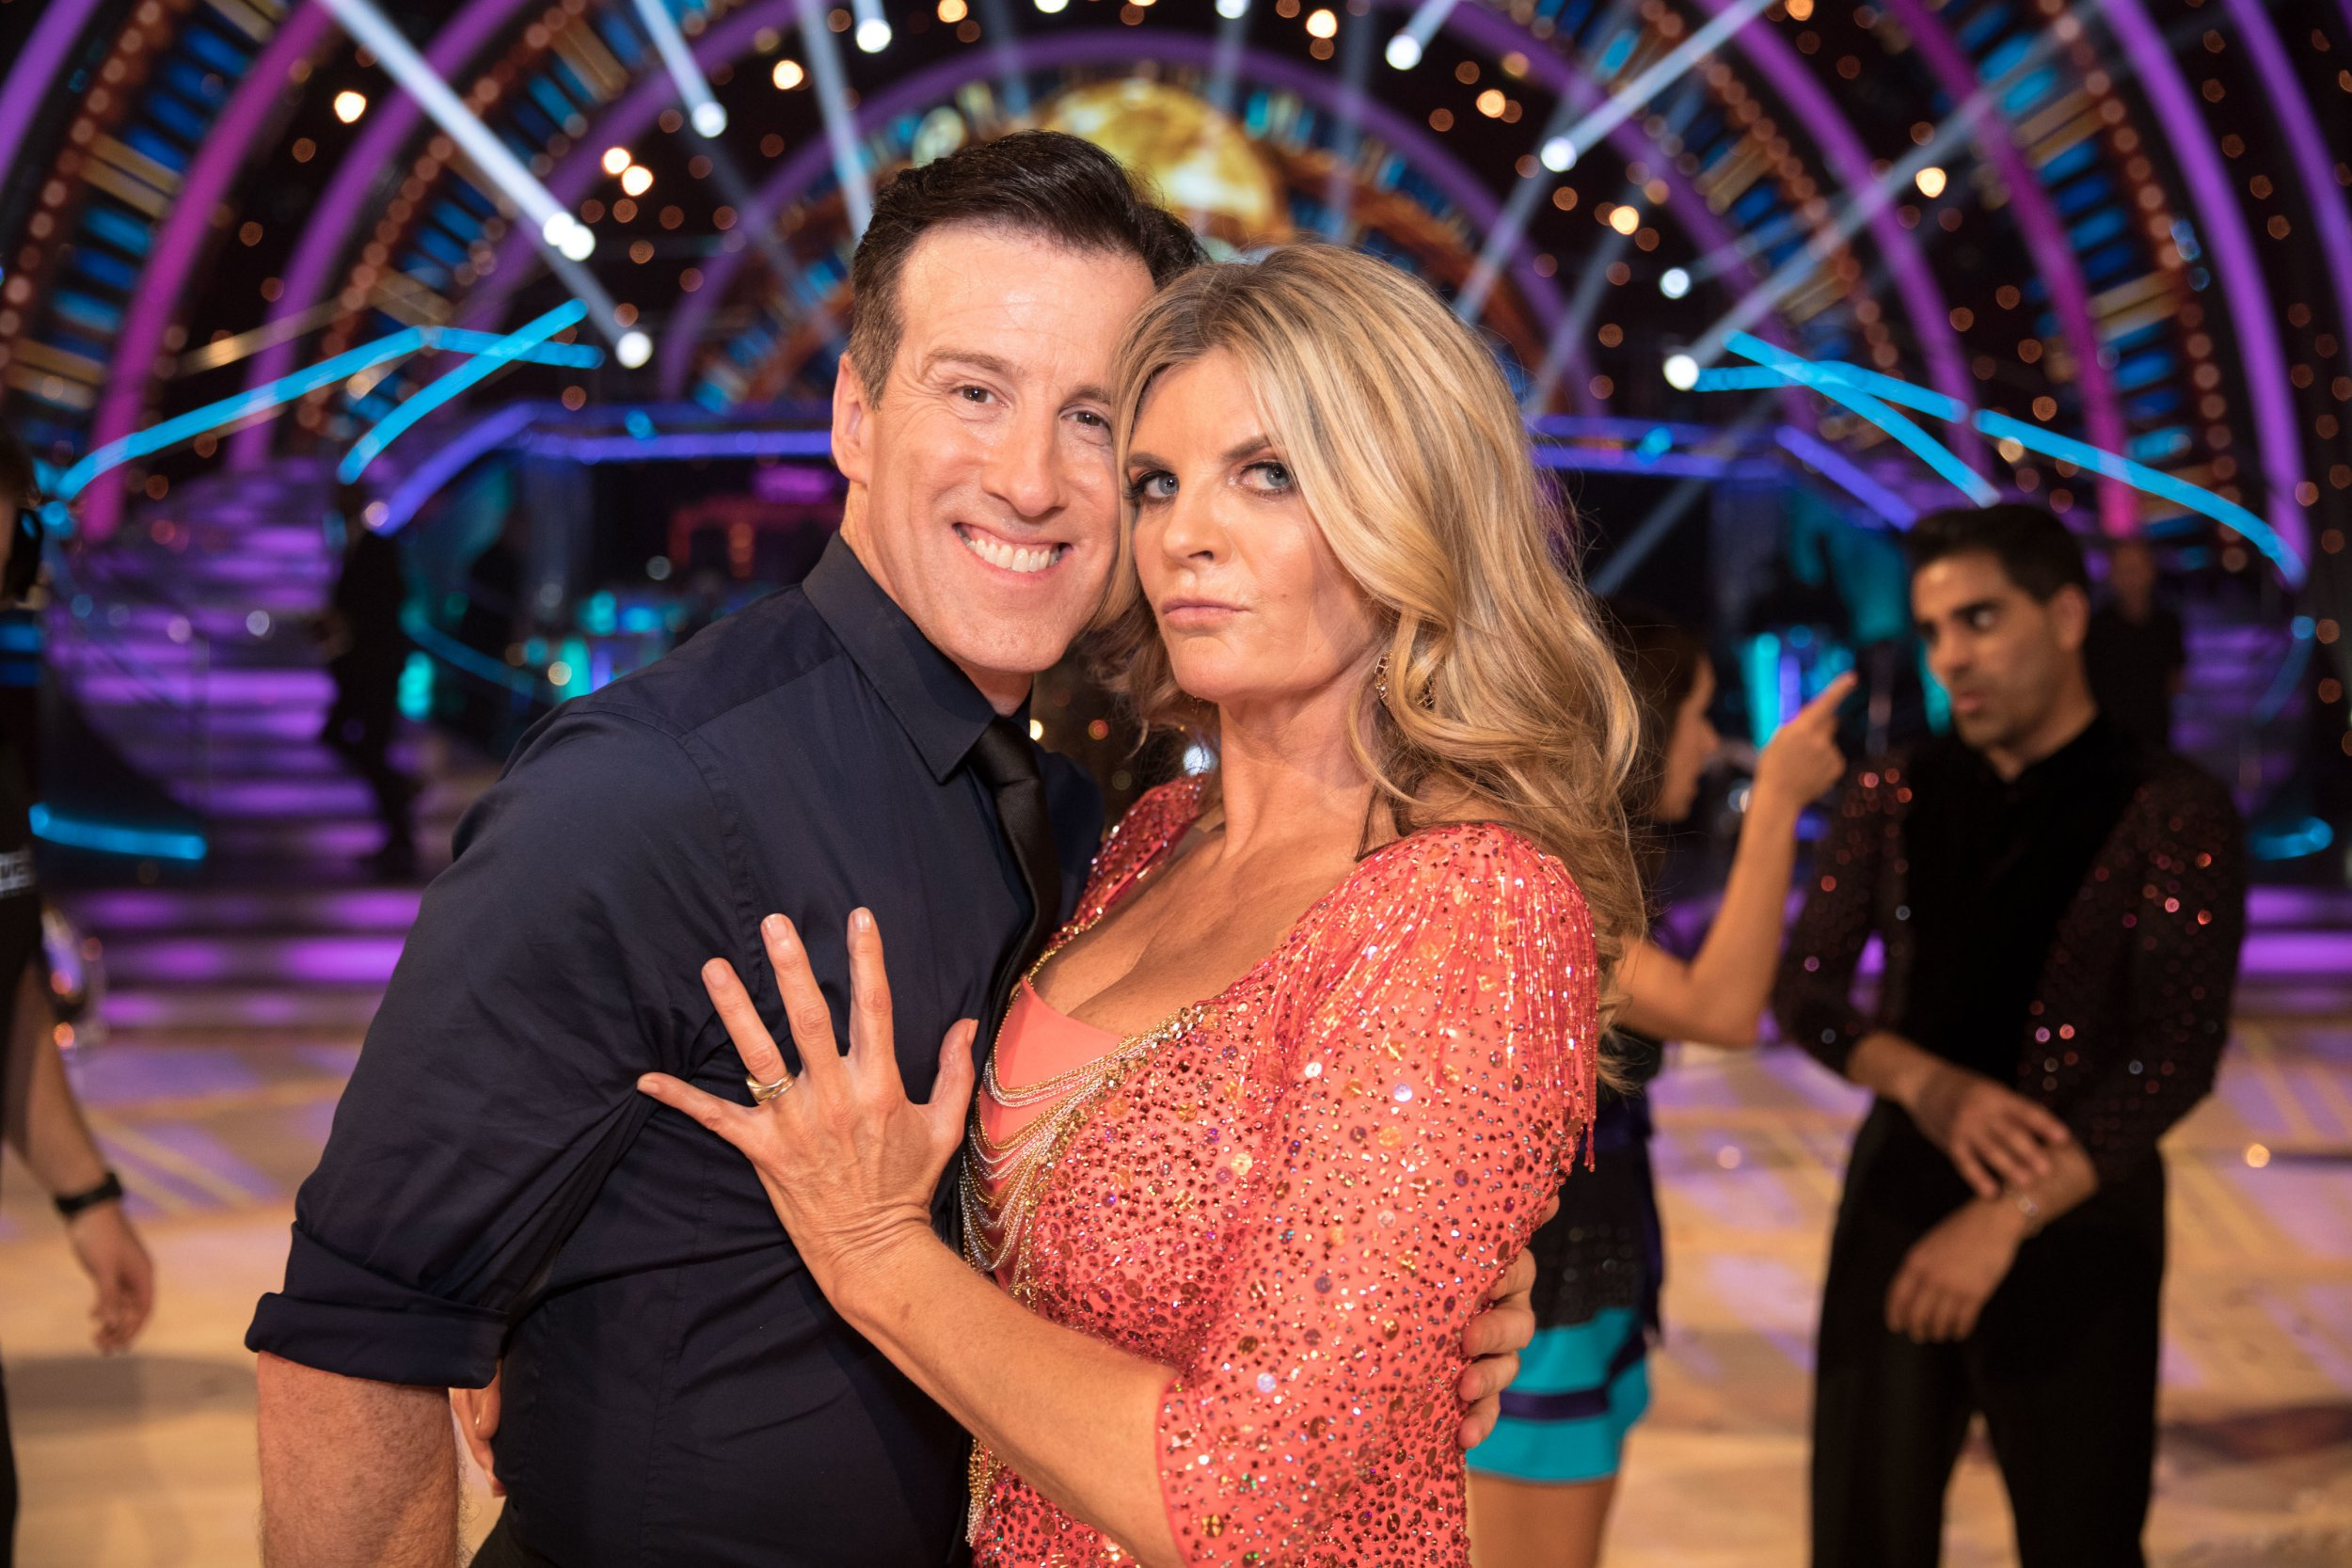 Susannah Constantine says 'bring on the Strictly curse' as she's partnered up with Anton Du Beke